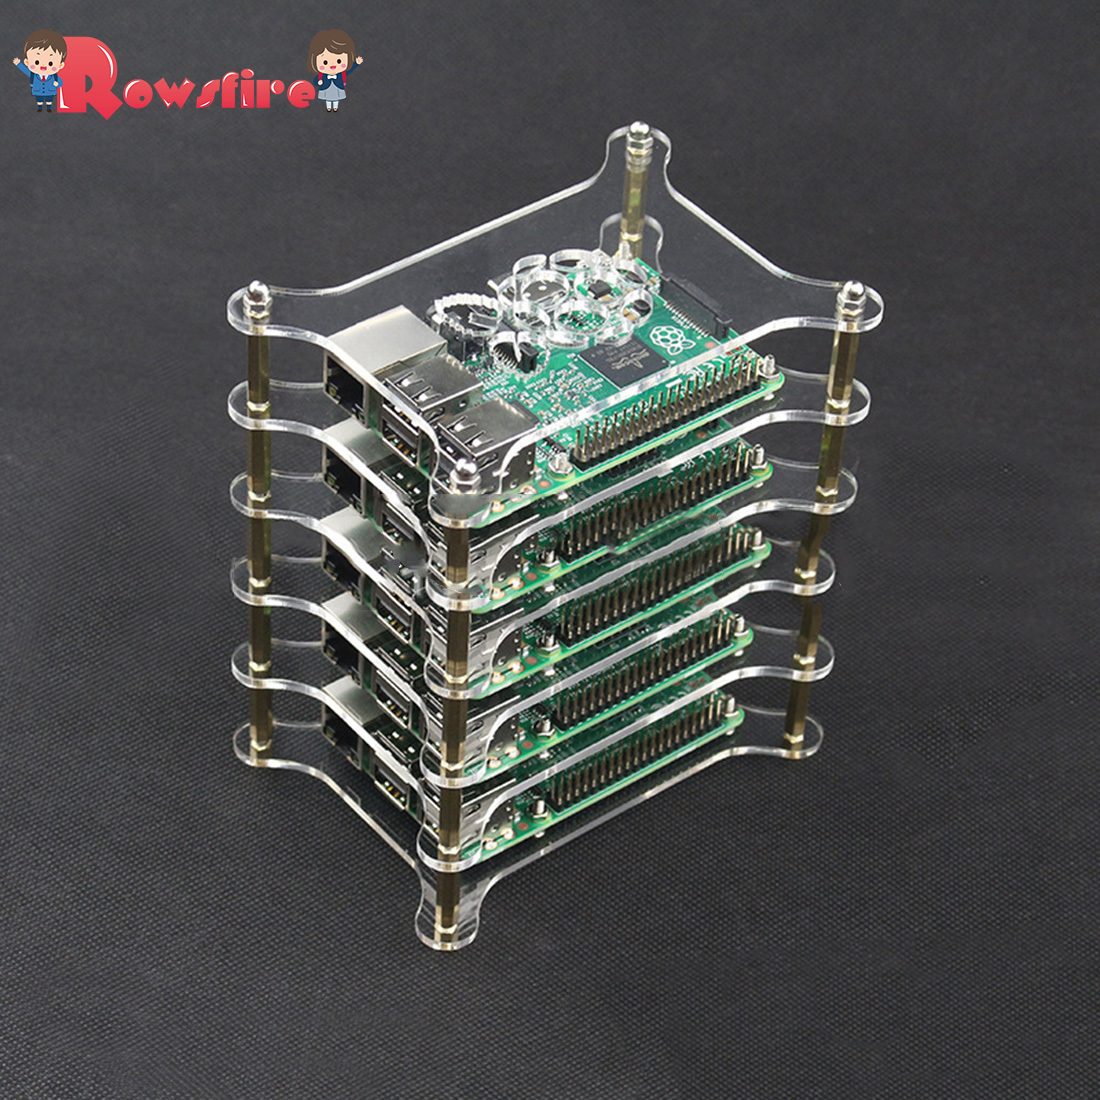 Acrylic Multilayer Cluster Servers Shell For Raspberry Pi 3B+/3B/2B - 6 Layers